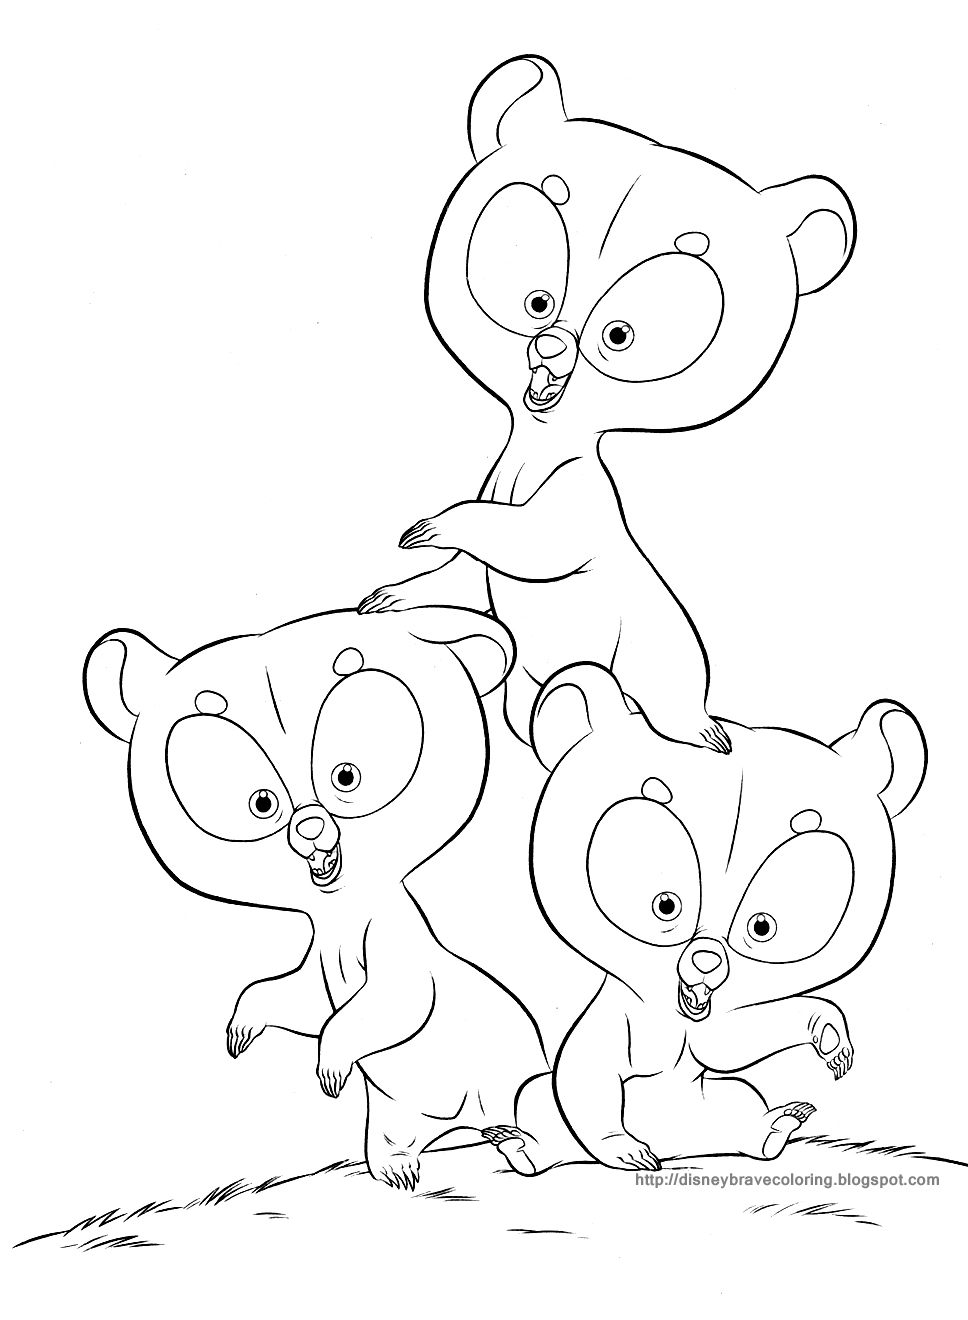 Free dreamworks home coloring pages for Dreamworks coloring pages